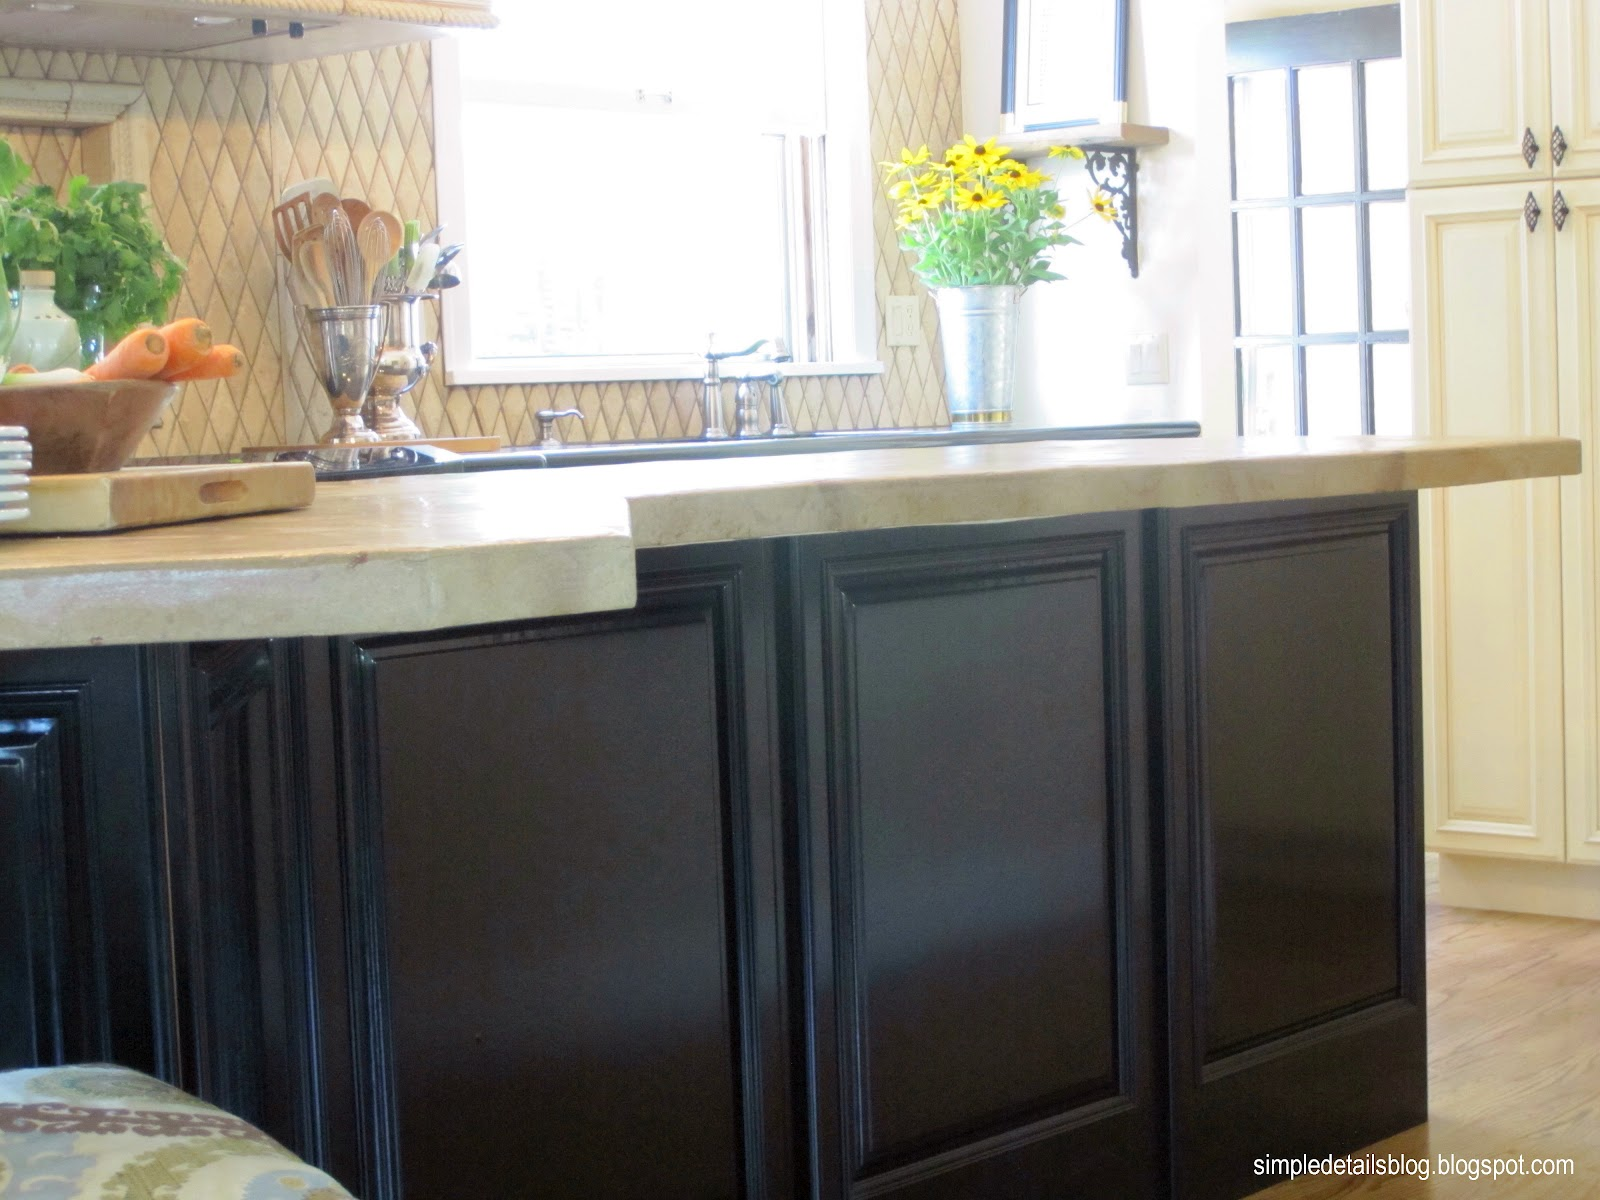 Simple Details how to a high end look from stock cabinets